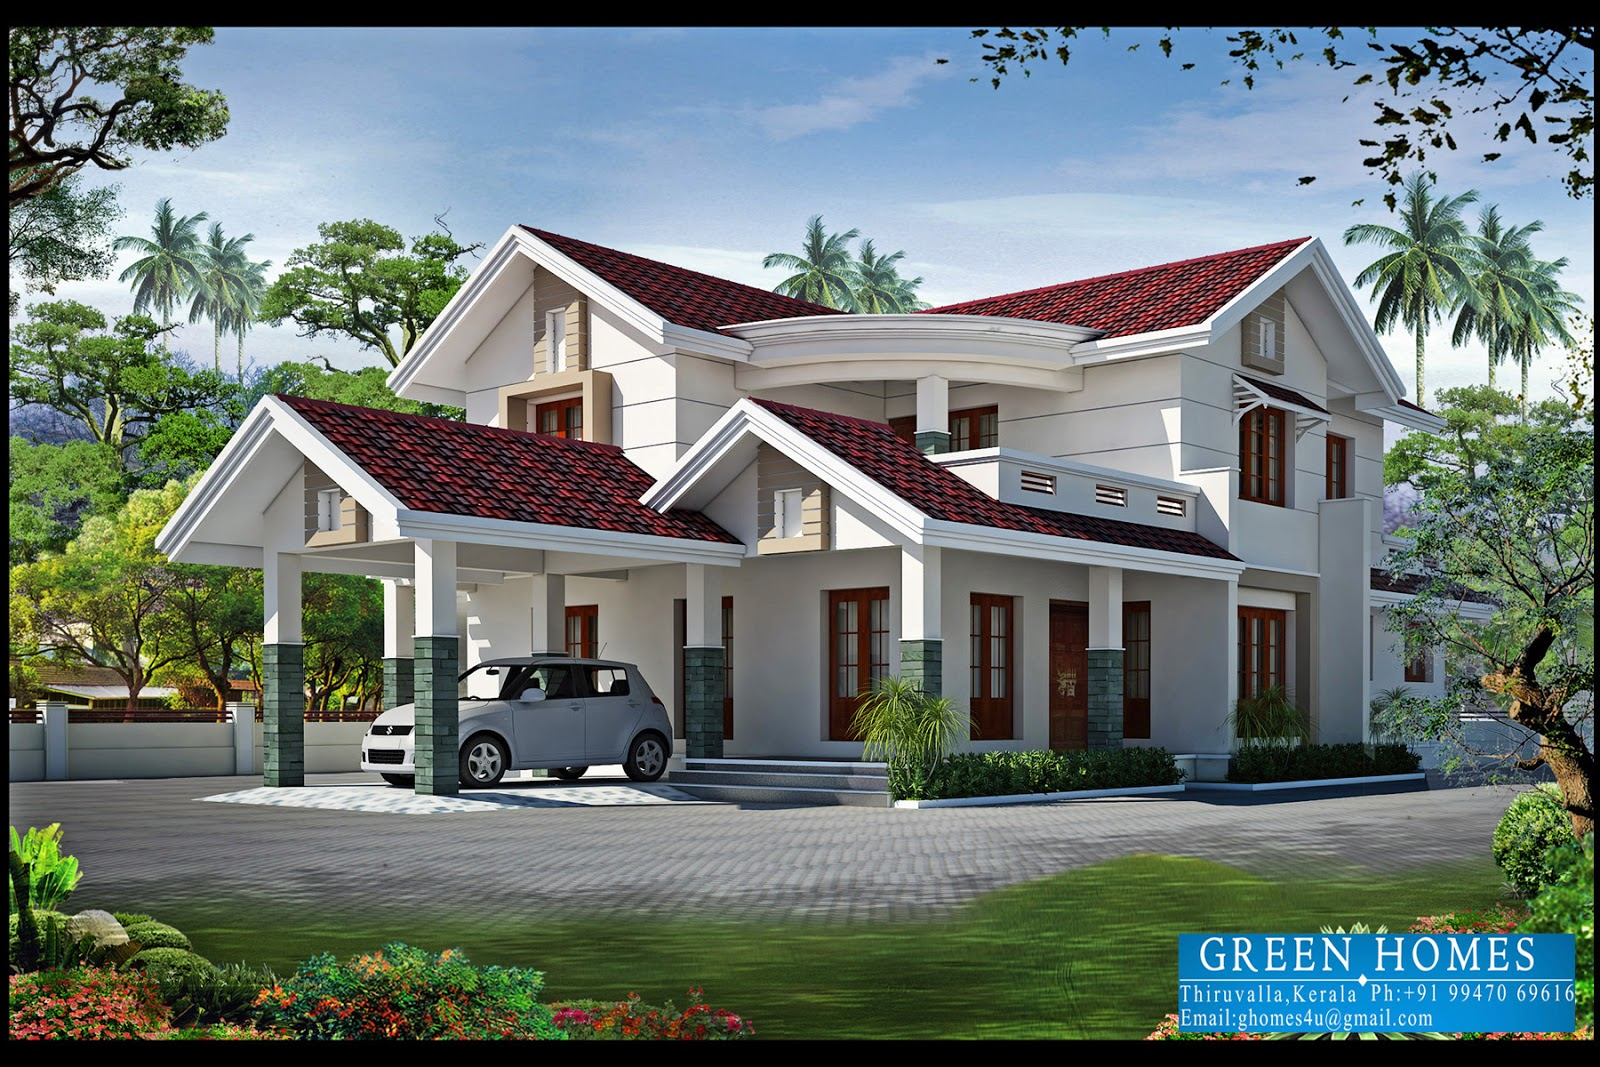 Green homes 4bhk kerala home design 2550 for New home plans 2015